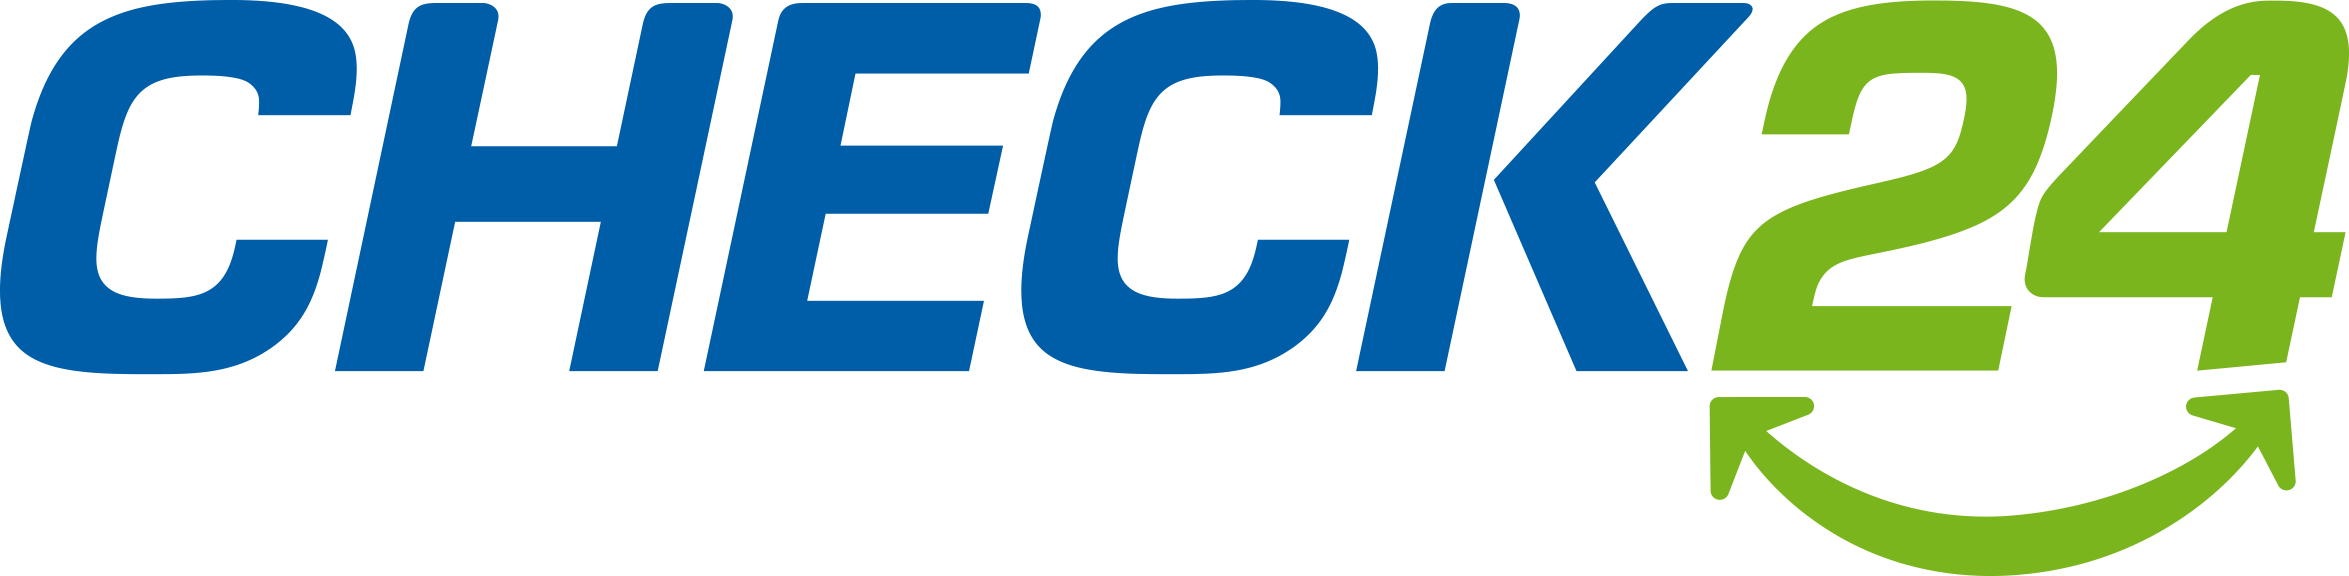 logo_ch-2.png